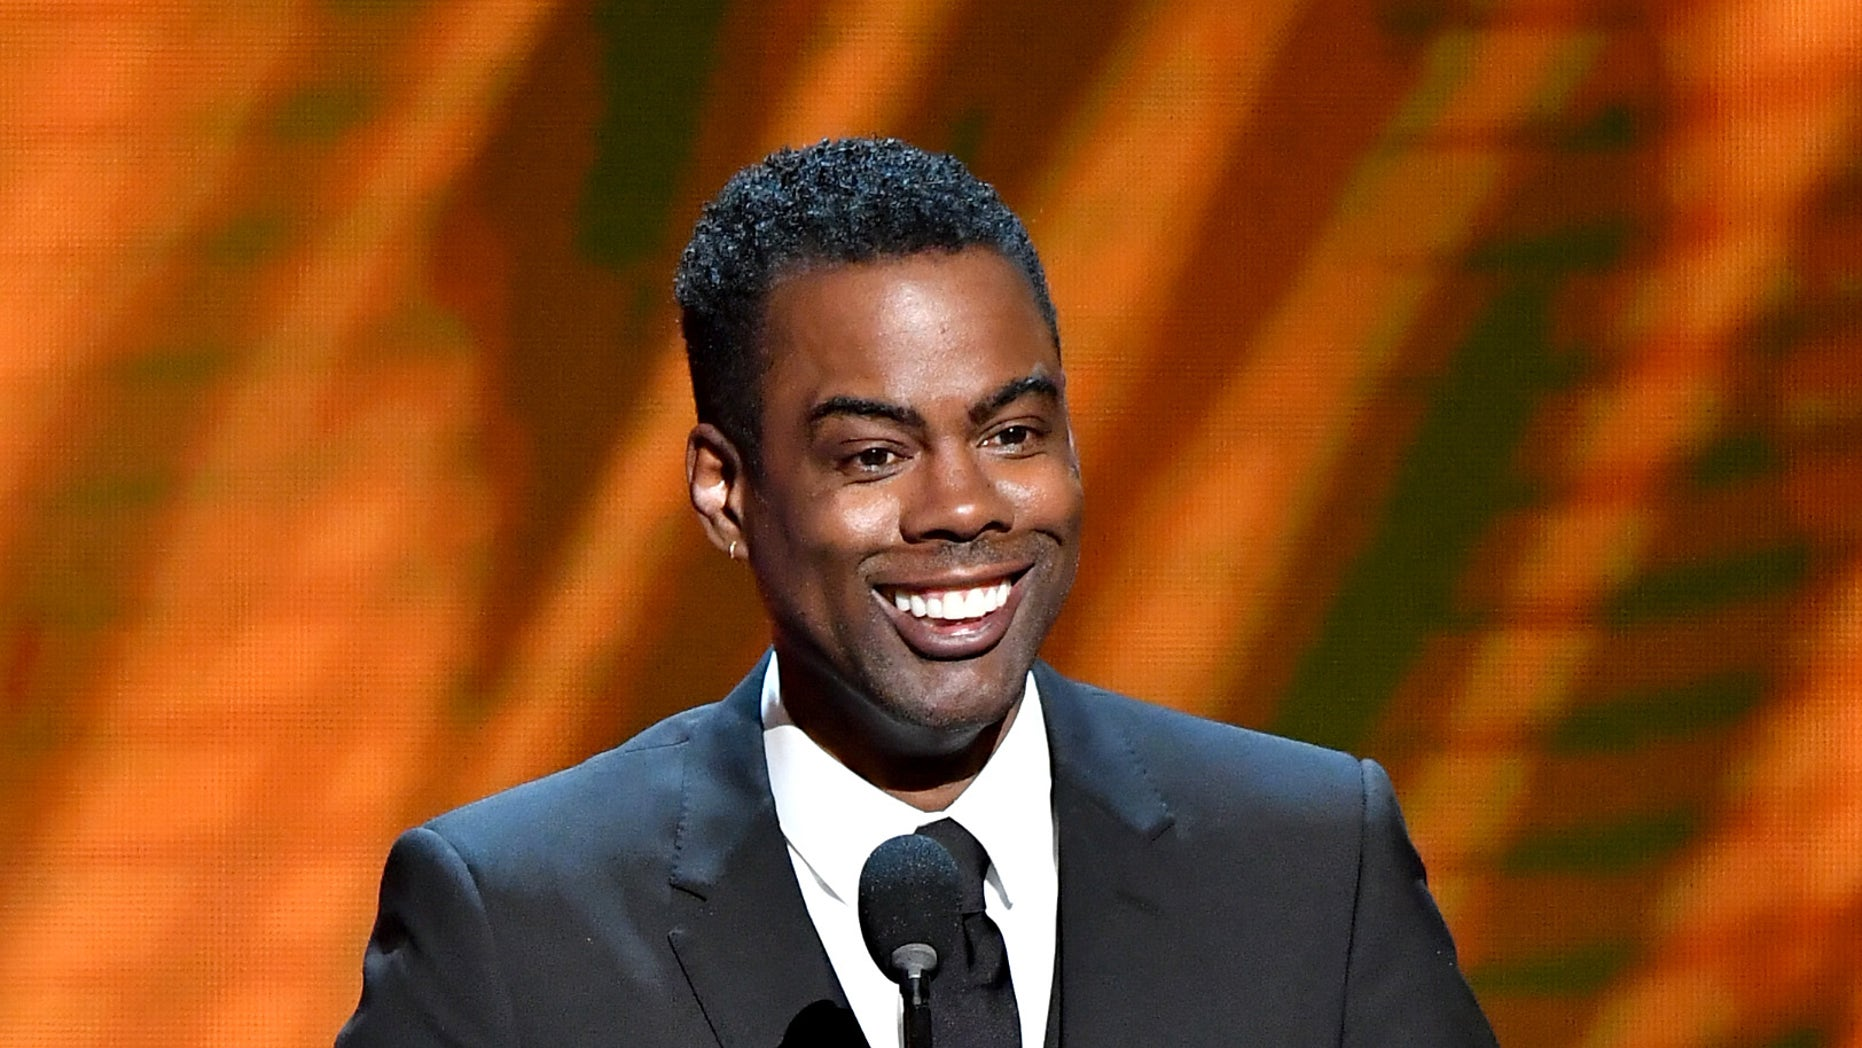 """Chris Rock speaks on stage at the 50th NAACP Image Awards at the Dolby Theater in Hollywood, California, March 30, 201<div class=""""e3lan e3lan-in-post1""""><script async src=""""//pagead2.googlesyndication.com/pagead/js/adsbygoogle.js""""></script> <!-- Text_Display_Responsive --> <ins class=""""adsbygoogle""""      style=""""display:block""""      data-ad-client=""""ca-pub-6192903739091894""""      data-ad-slot=""""3136787391""""      data-ad-format=""""auto""""      data-full-width-responsive=""""true""""></ins> <script> (adsbygoogle = window.adsbygoogle    []).push({}); </script></div>9. (Getty Images)"""